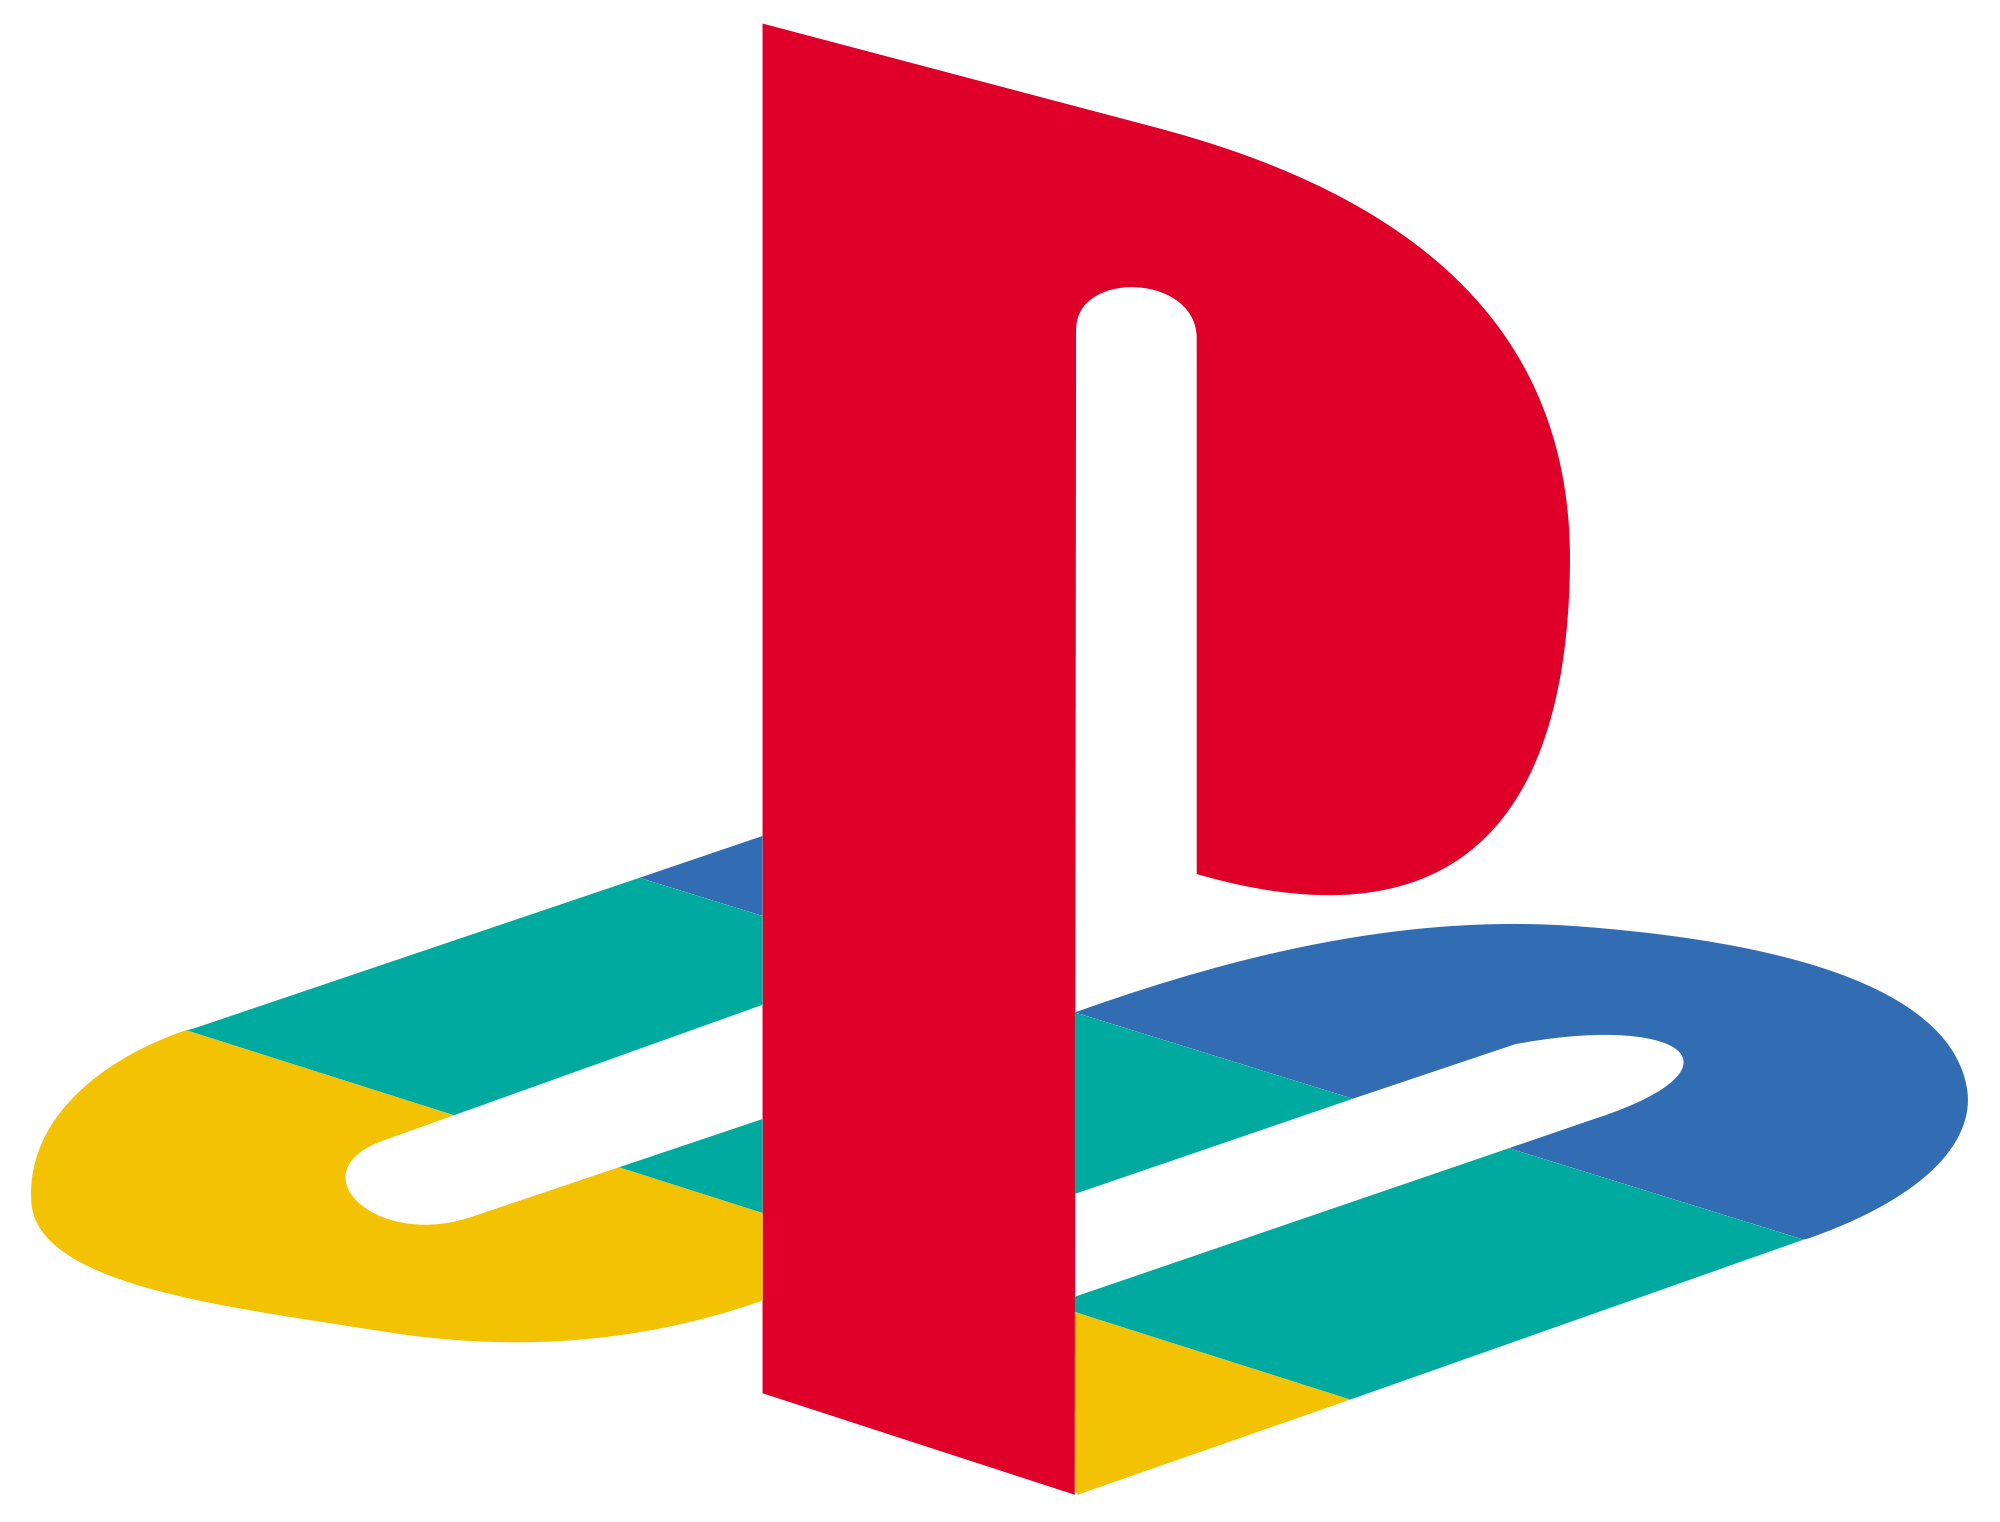 PS One Playstation Vita Support Should Be Here Soon - Just Push Start